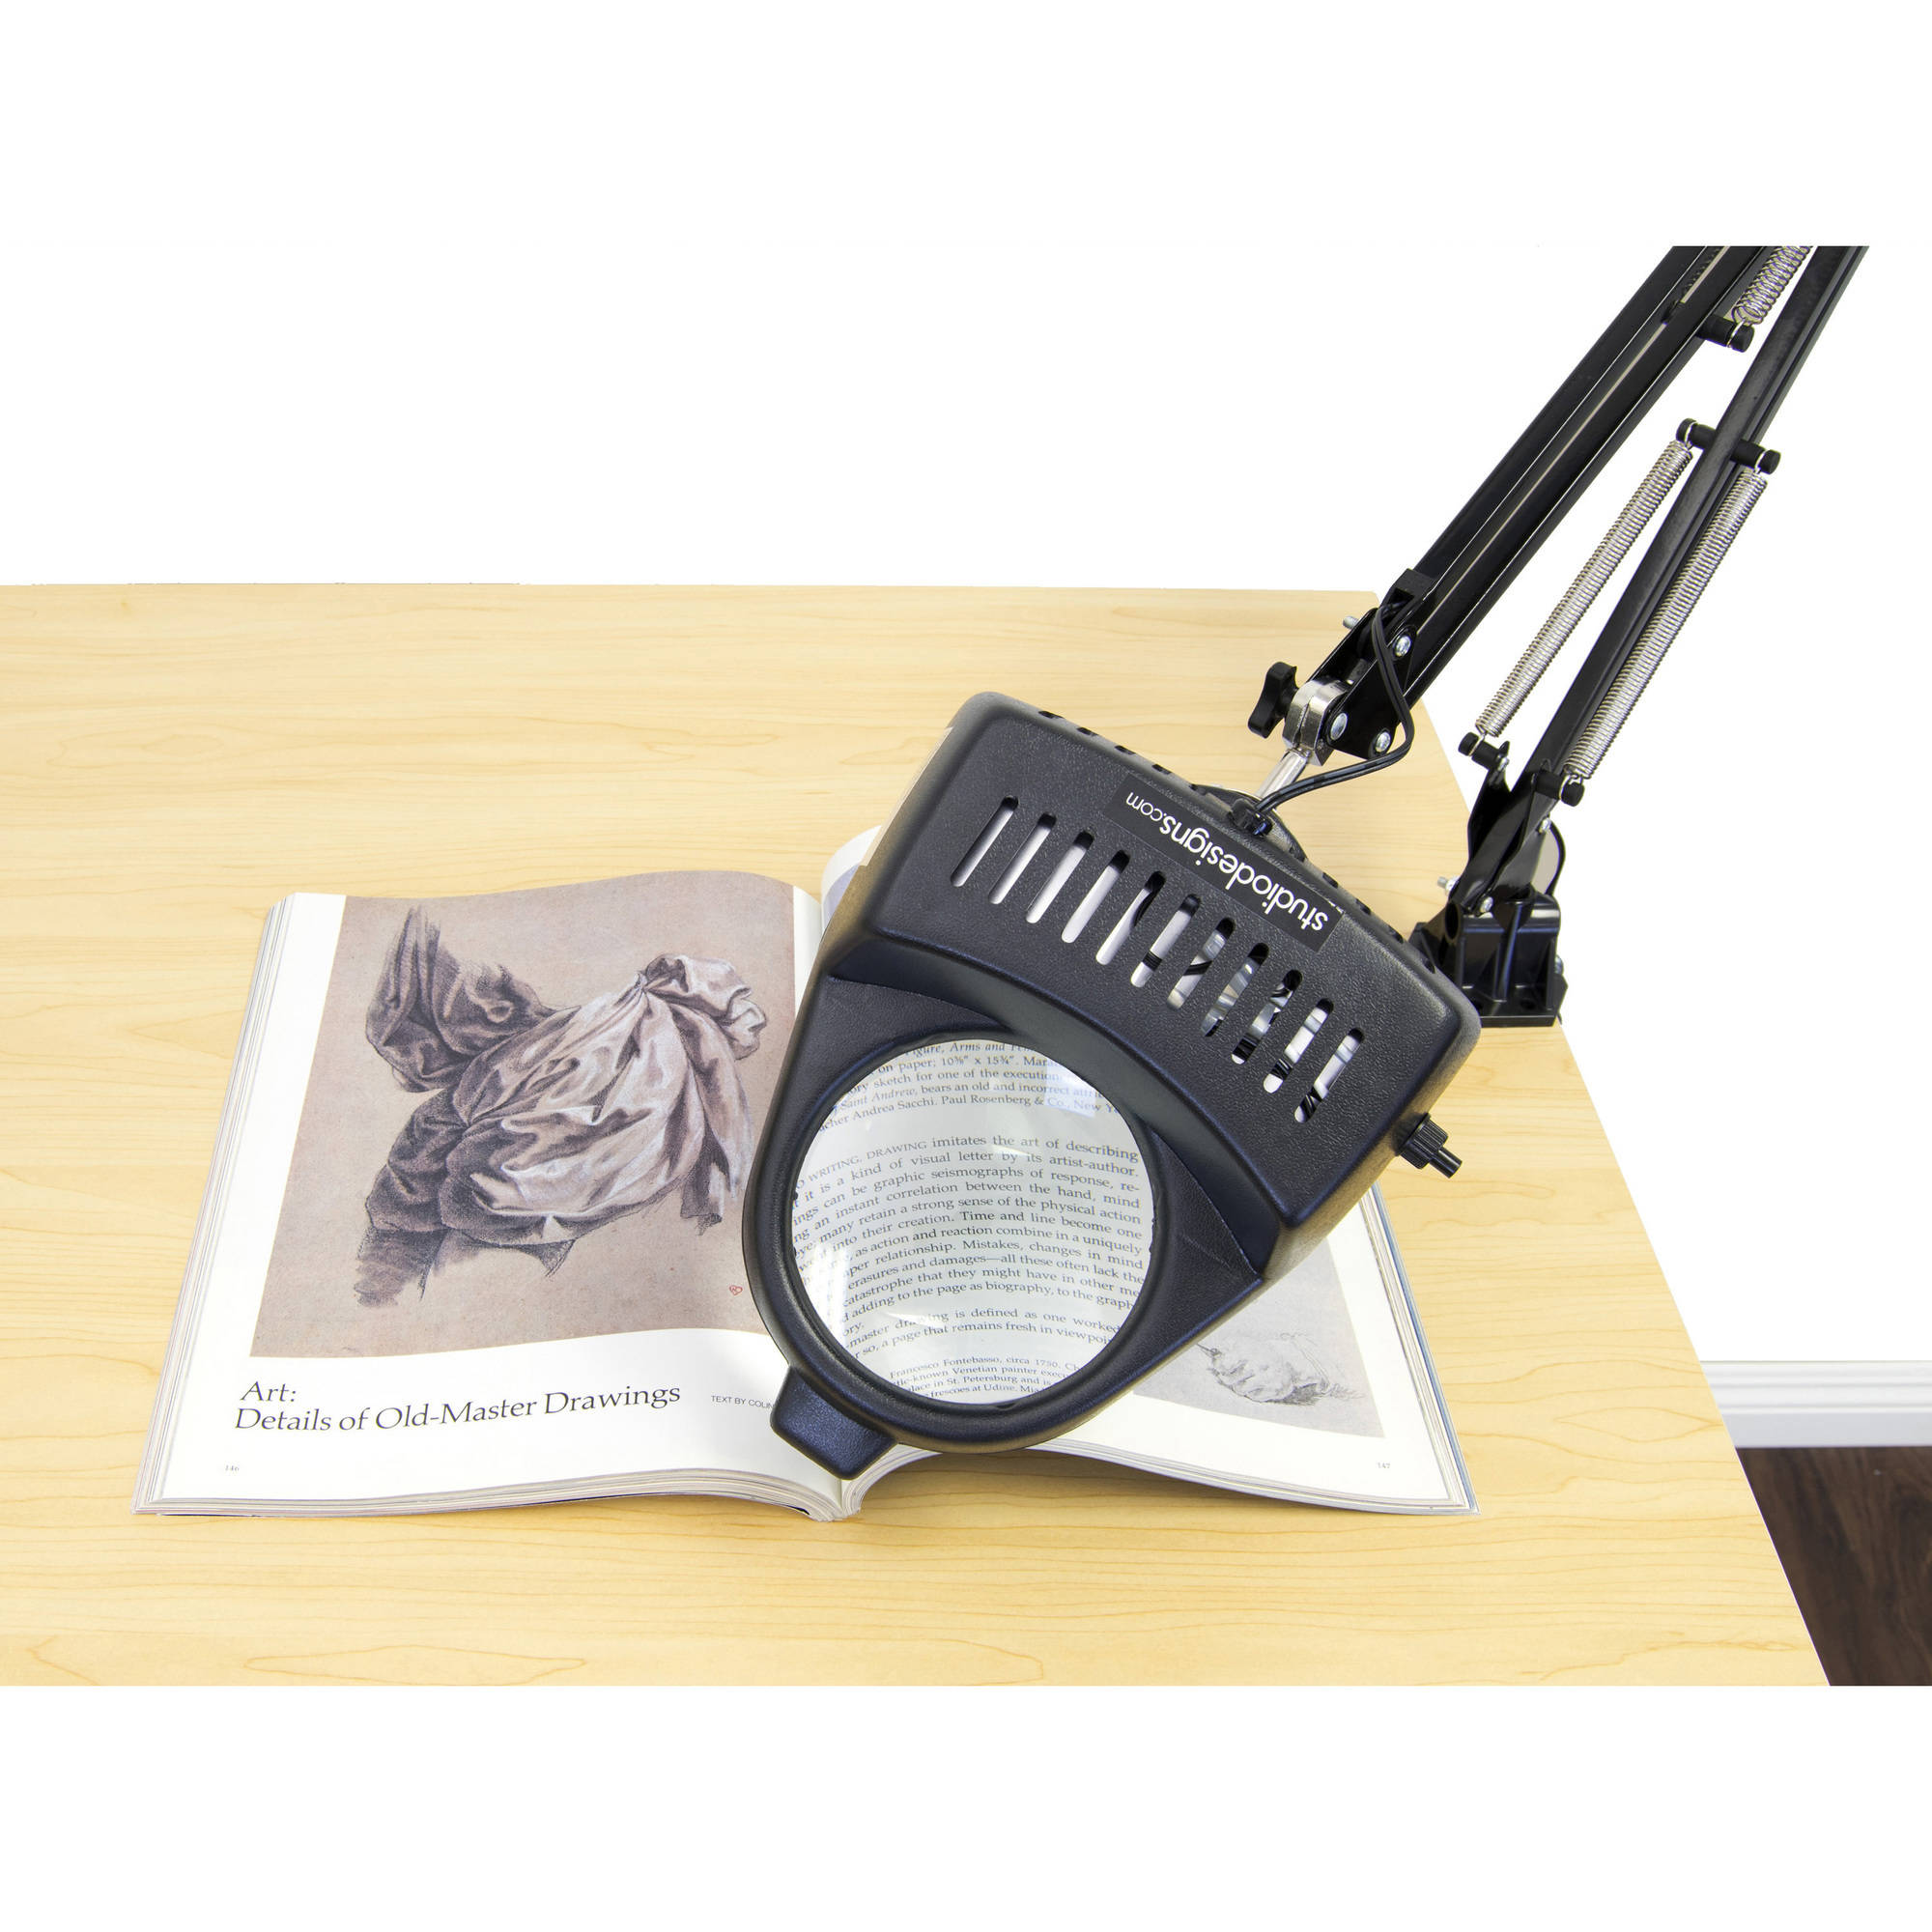 LED Magnifying Lamp, Black